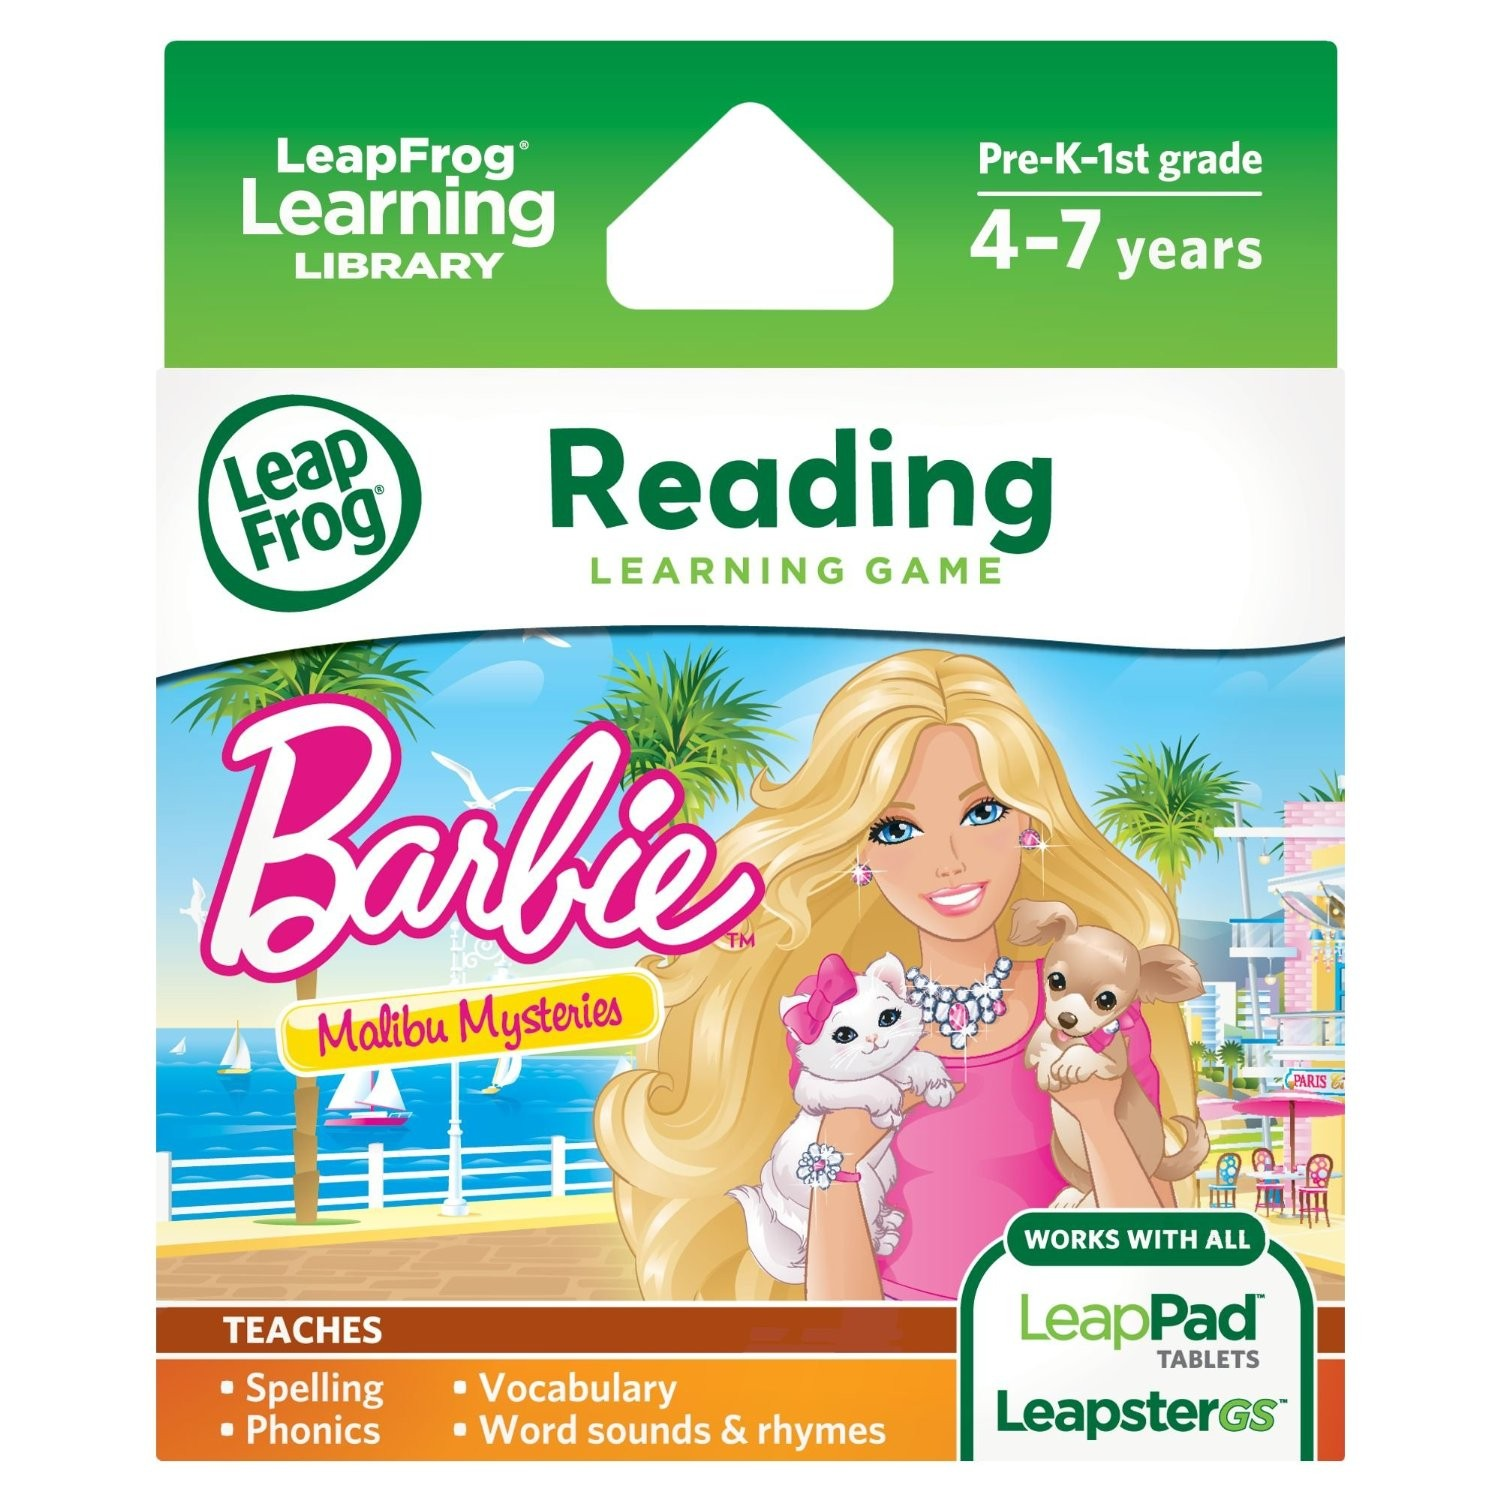 LeapPad Barbie Learning Game